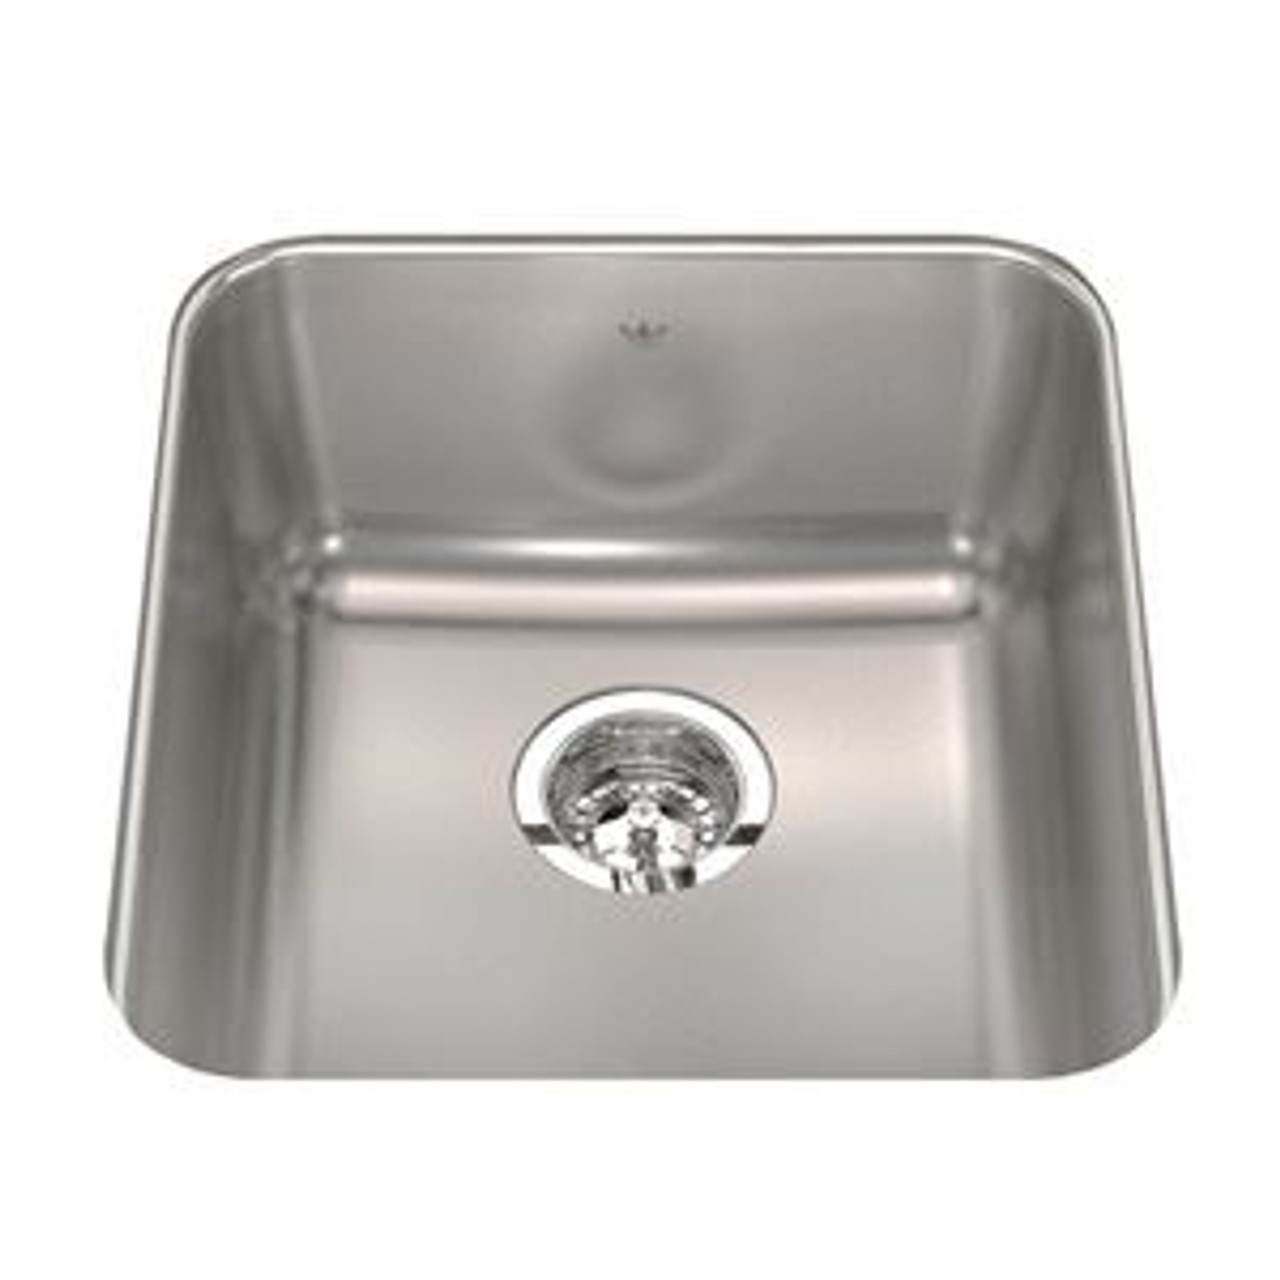 Kindred Qsua1917 8 17 Single Bowl Stainless Steel Undermount Bar Prep Sink In Stainless Steel York Taps